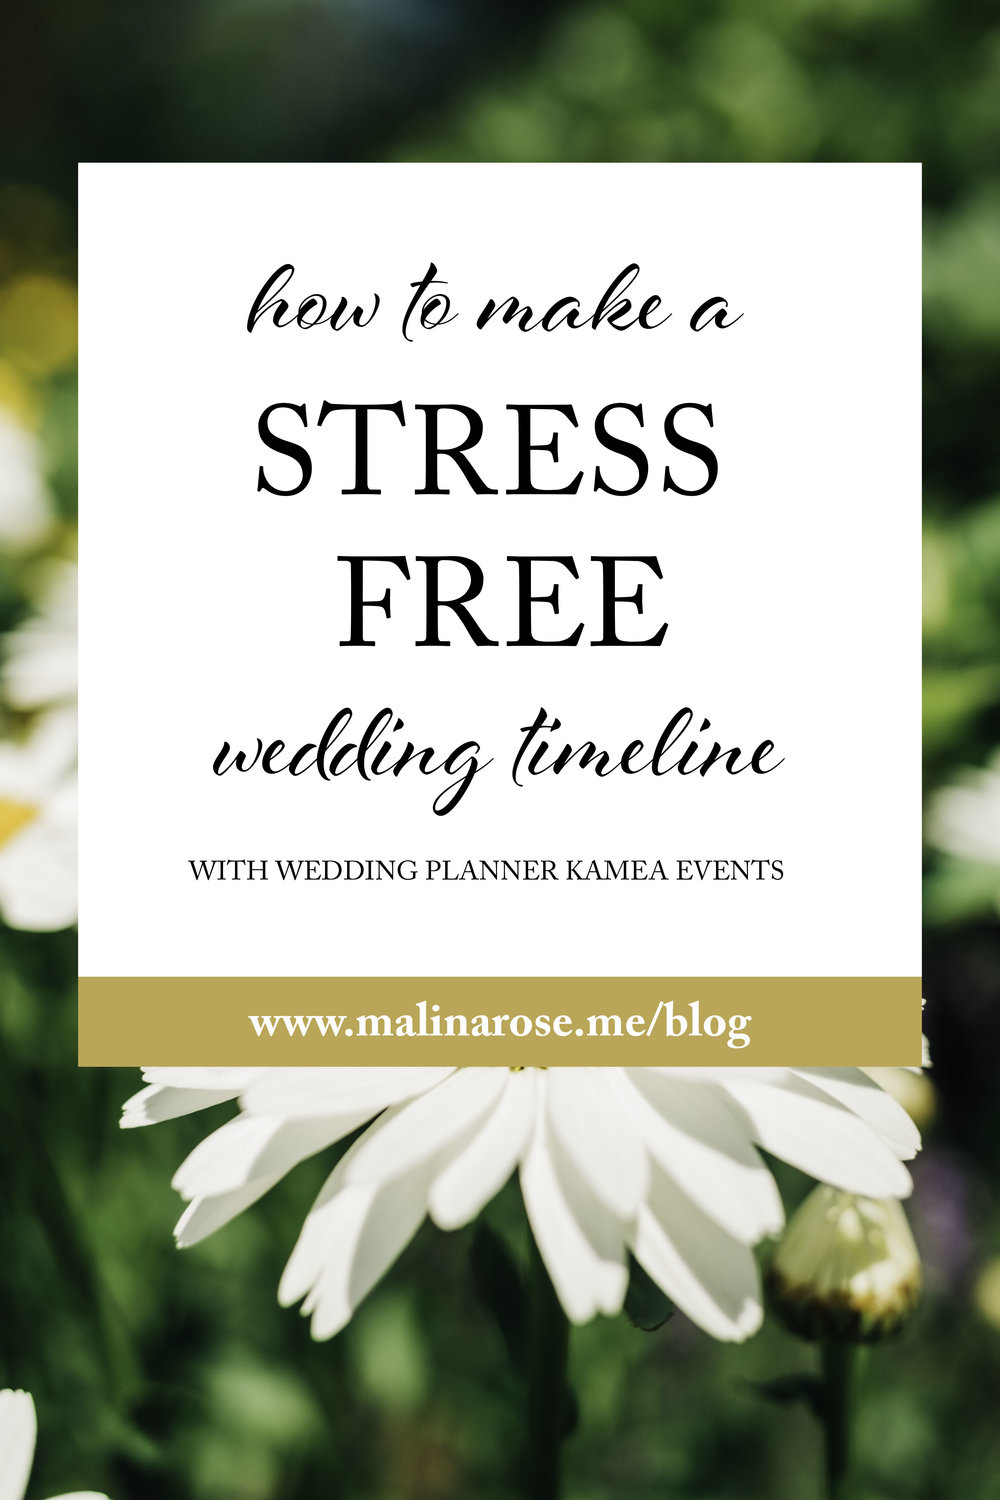 How To Make A Stress Free Wedding Timeline With Wedding Planner